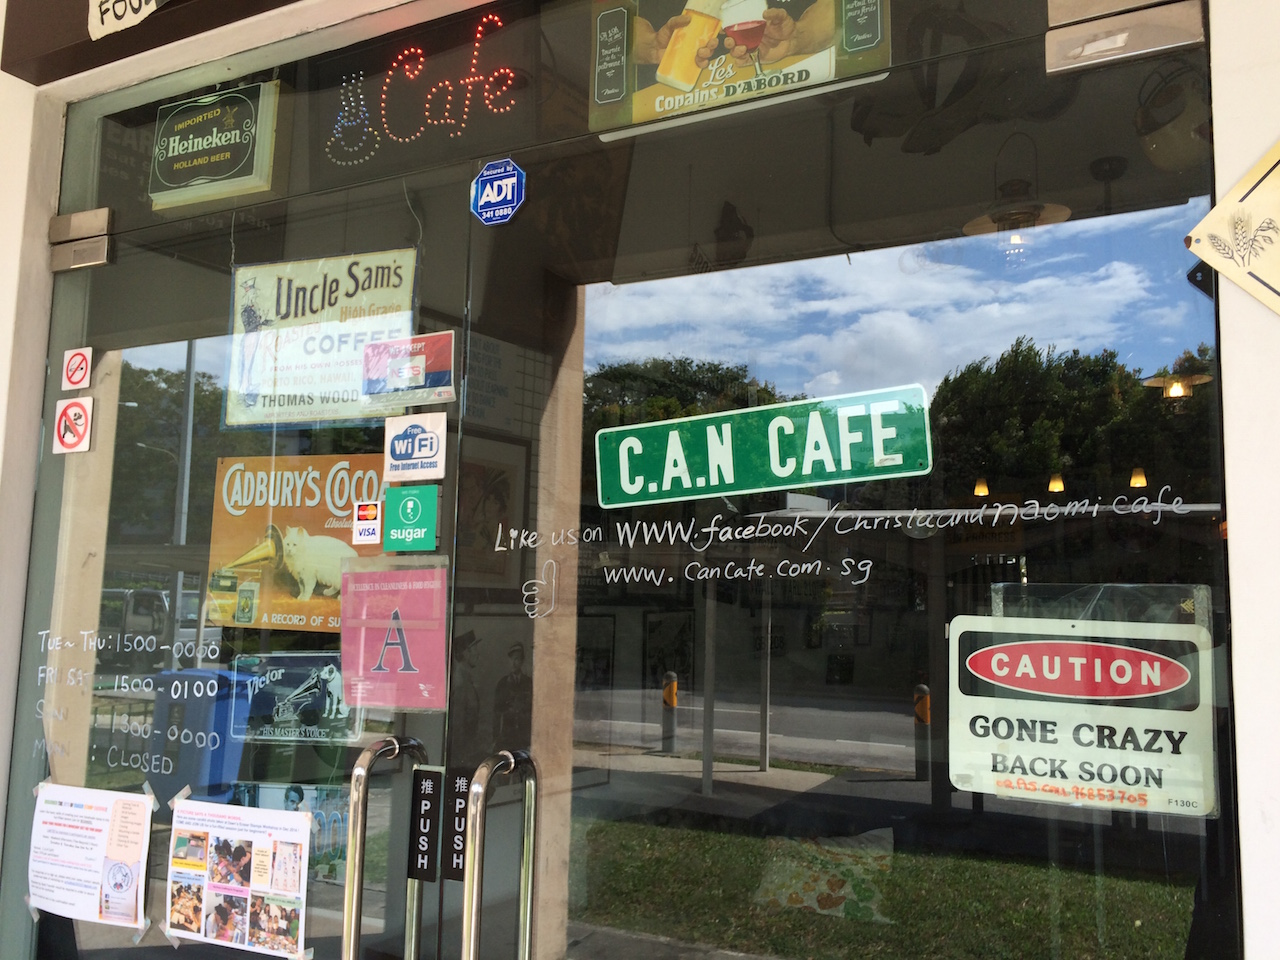 C.A.N Cafe at 730 Upper Serangoon Road